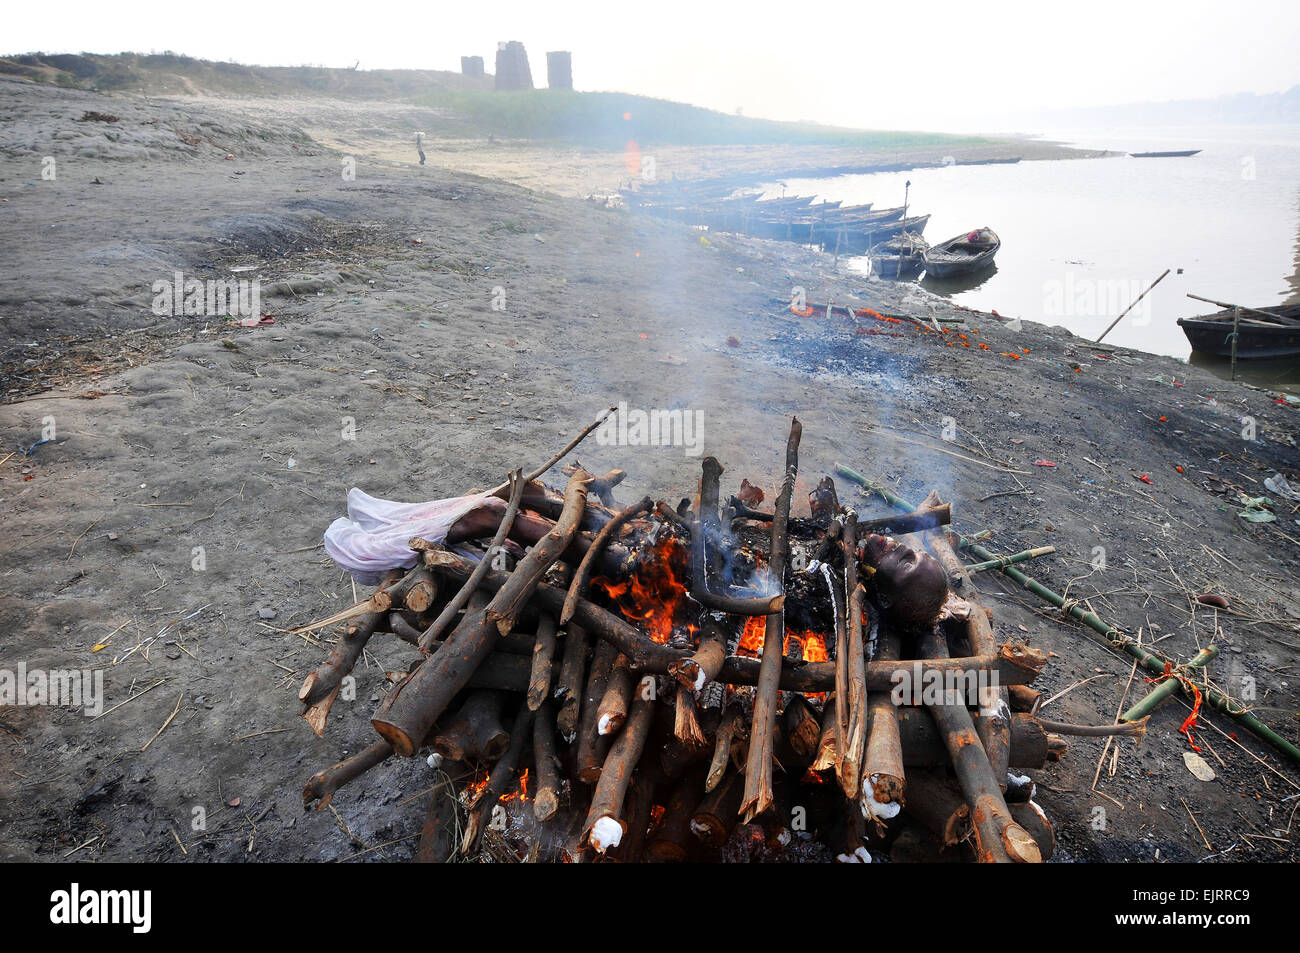 Cremation by the banks of the holy Ganges. - Stock Image